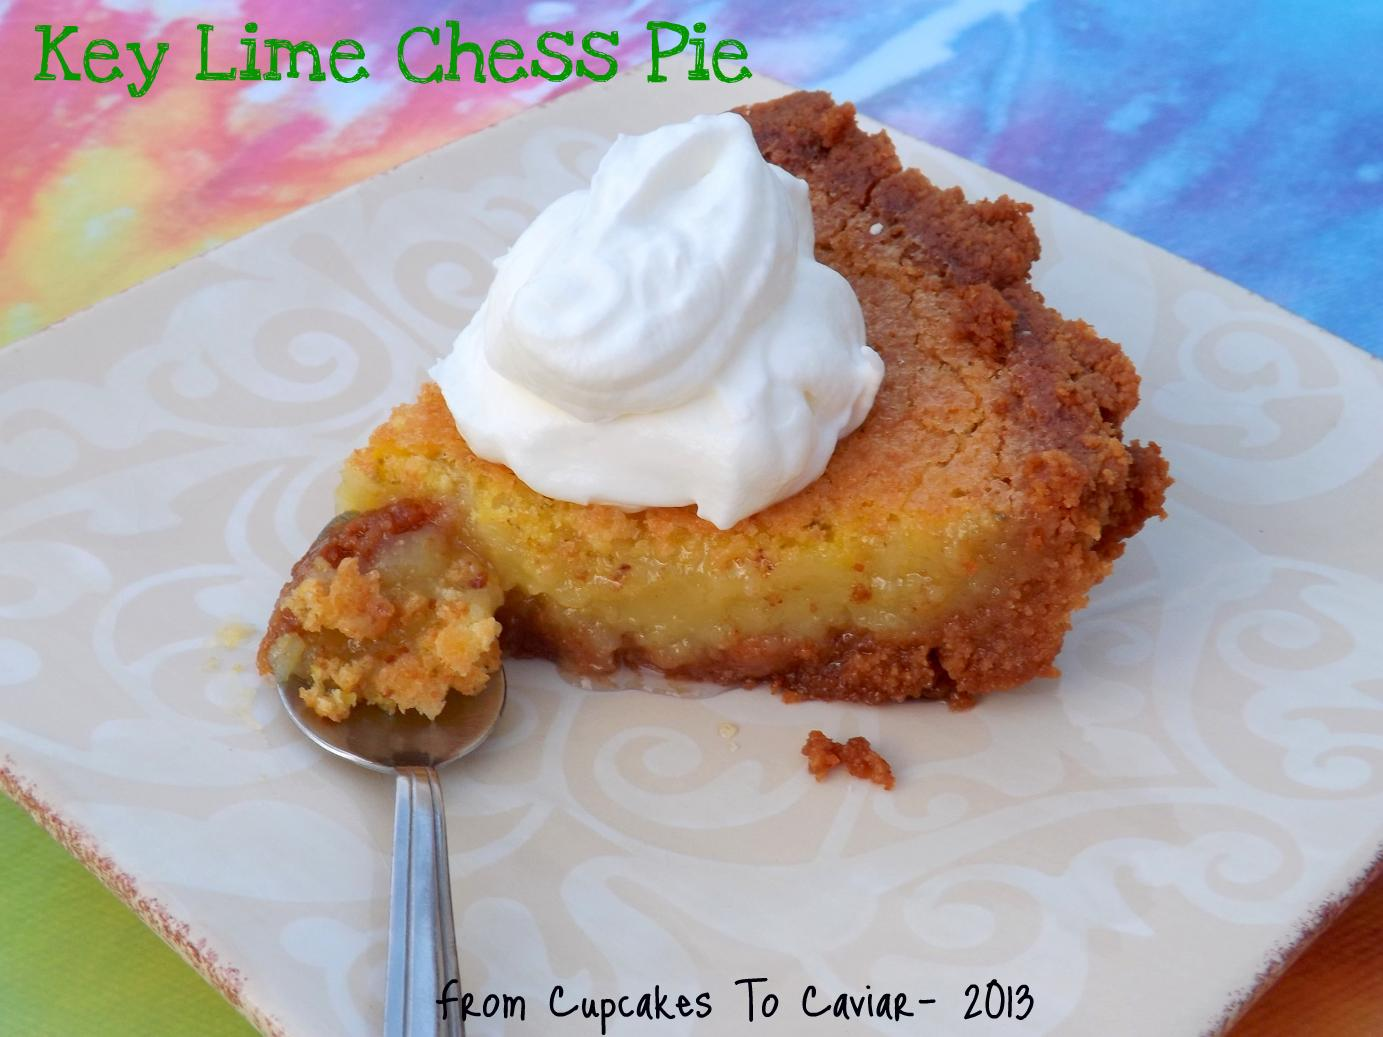 Key Lime Chess Pie 1